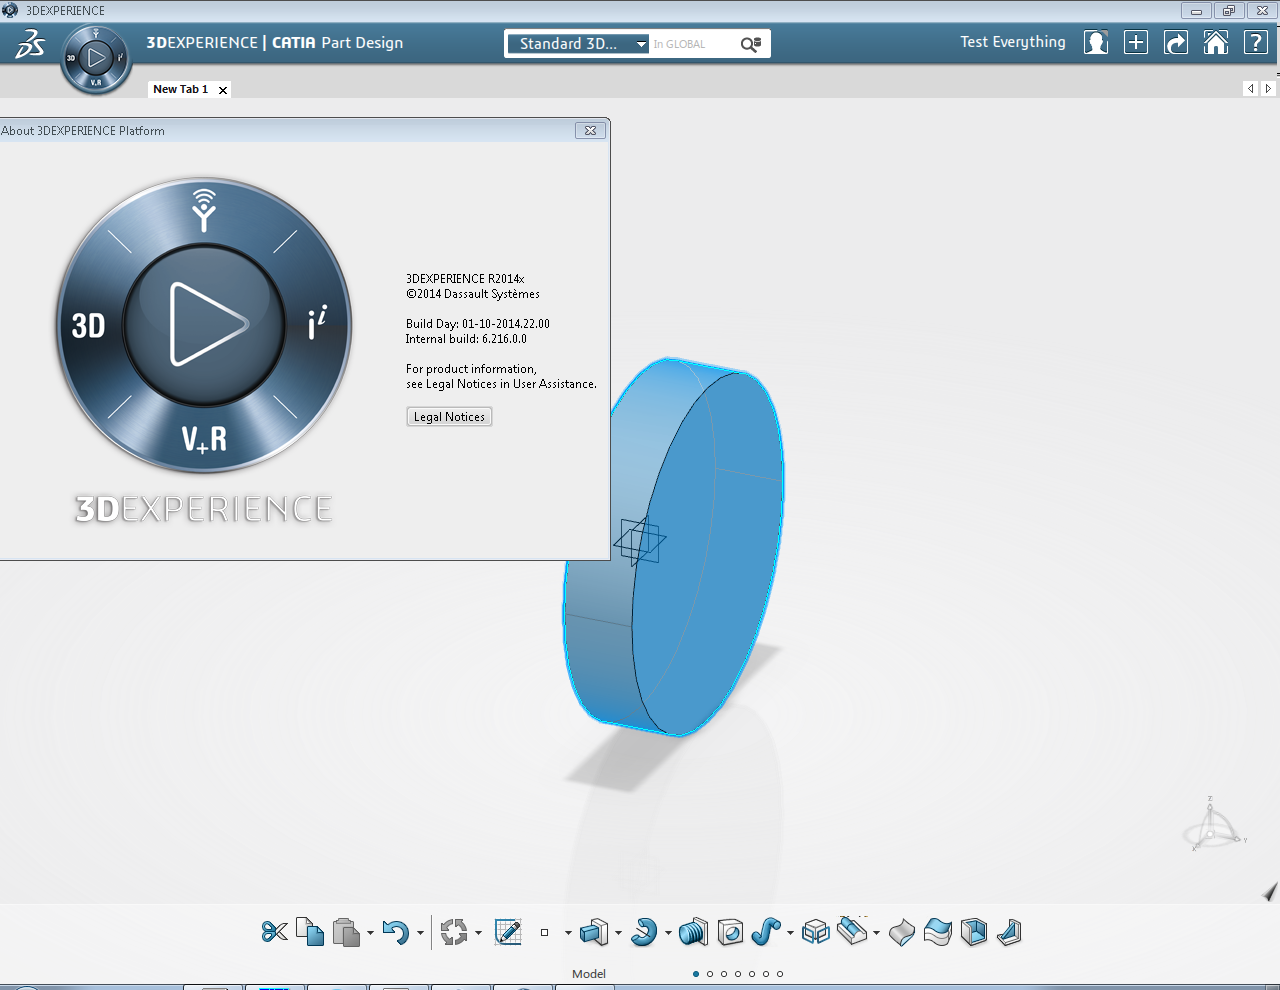 Working with DASSAULT SYSTEMES 3DEXPERIENCE V6 R2014X full